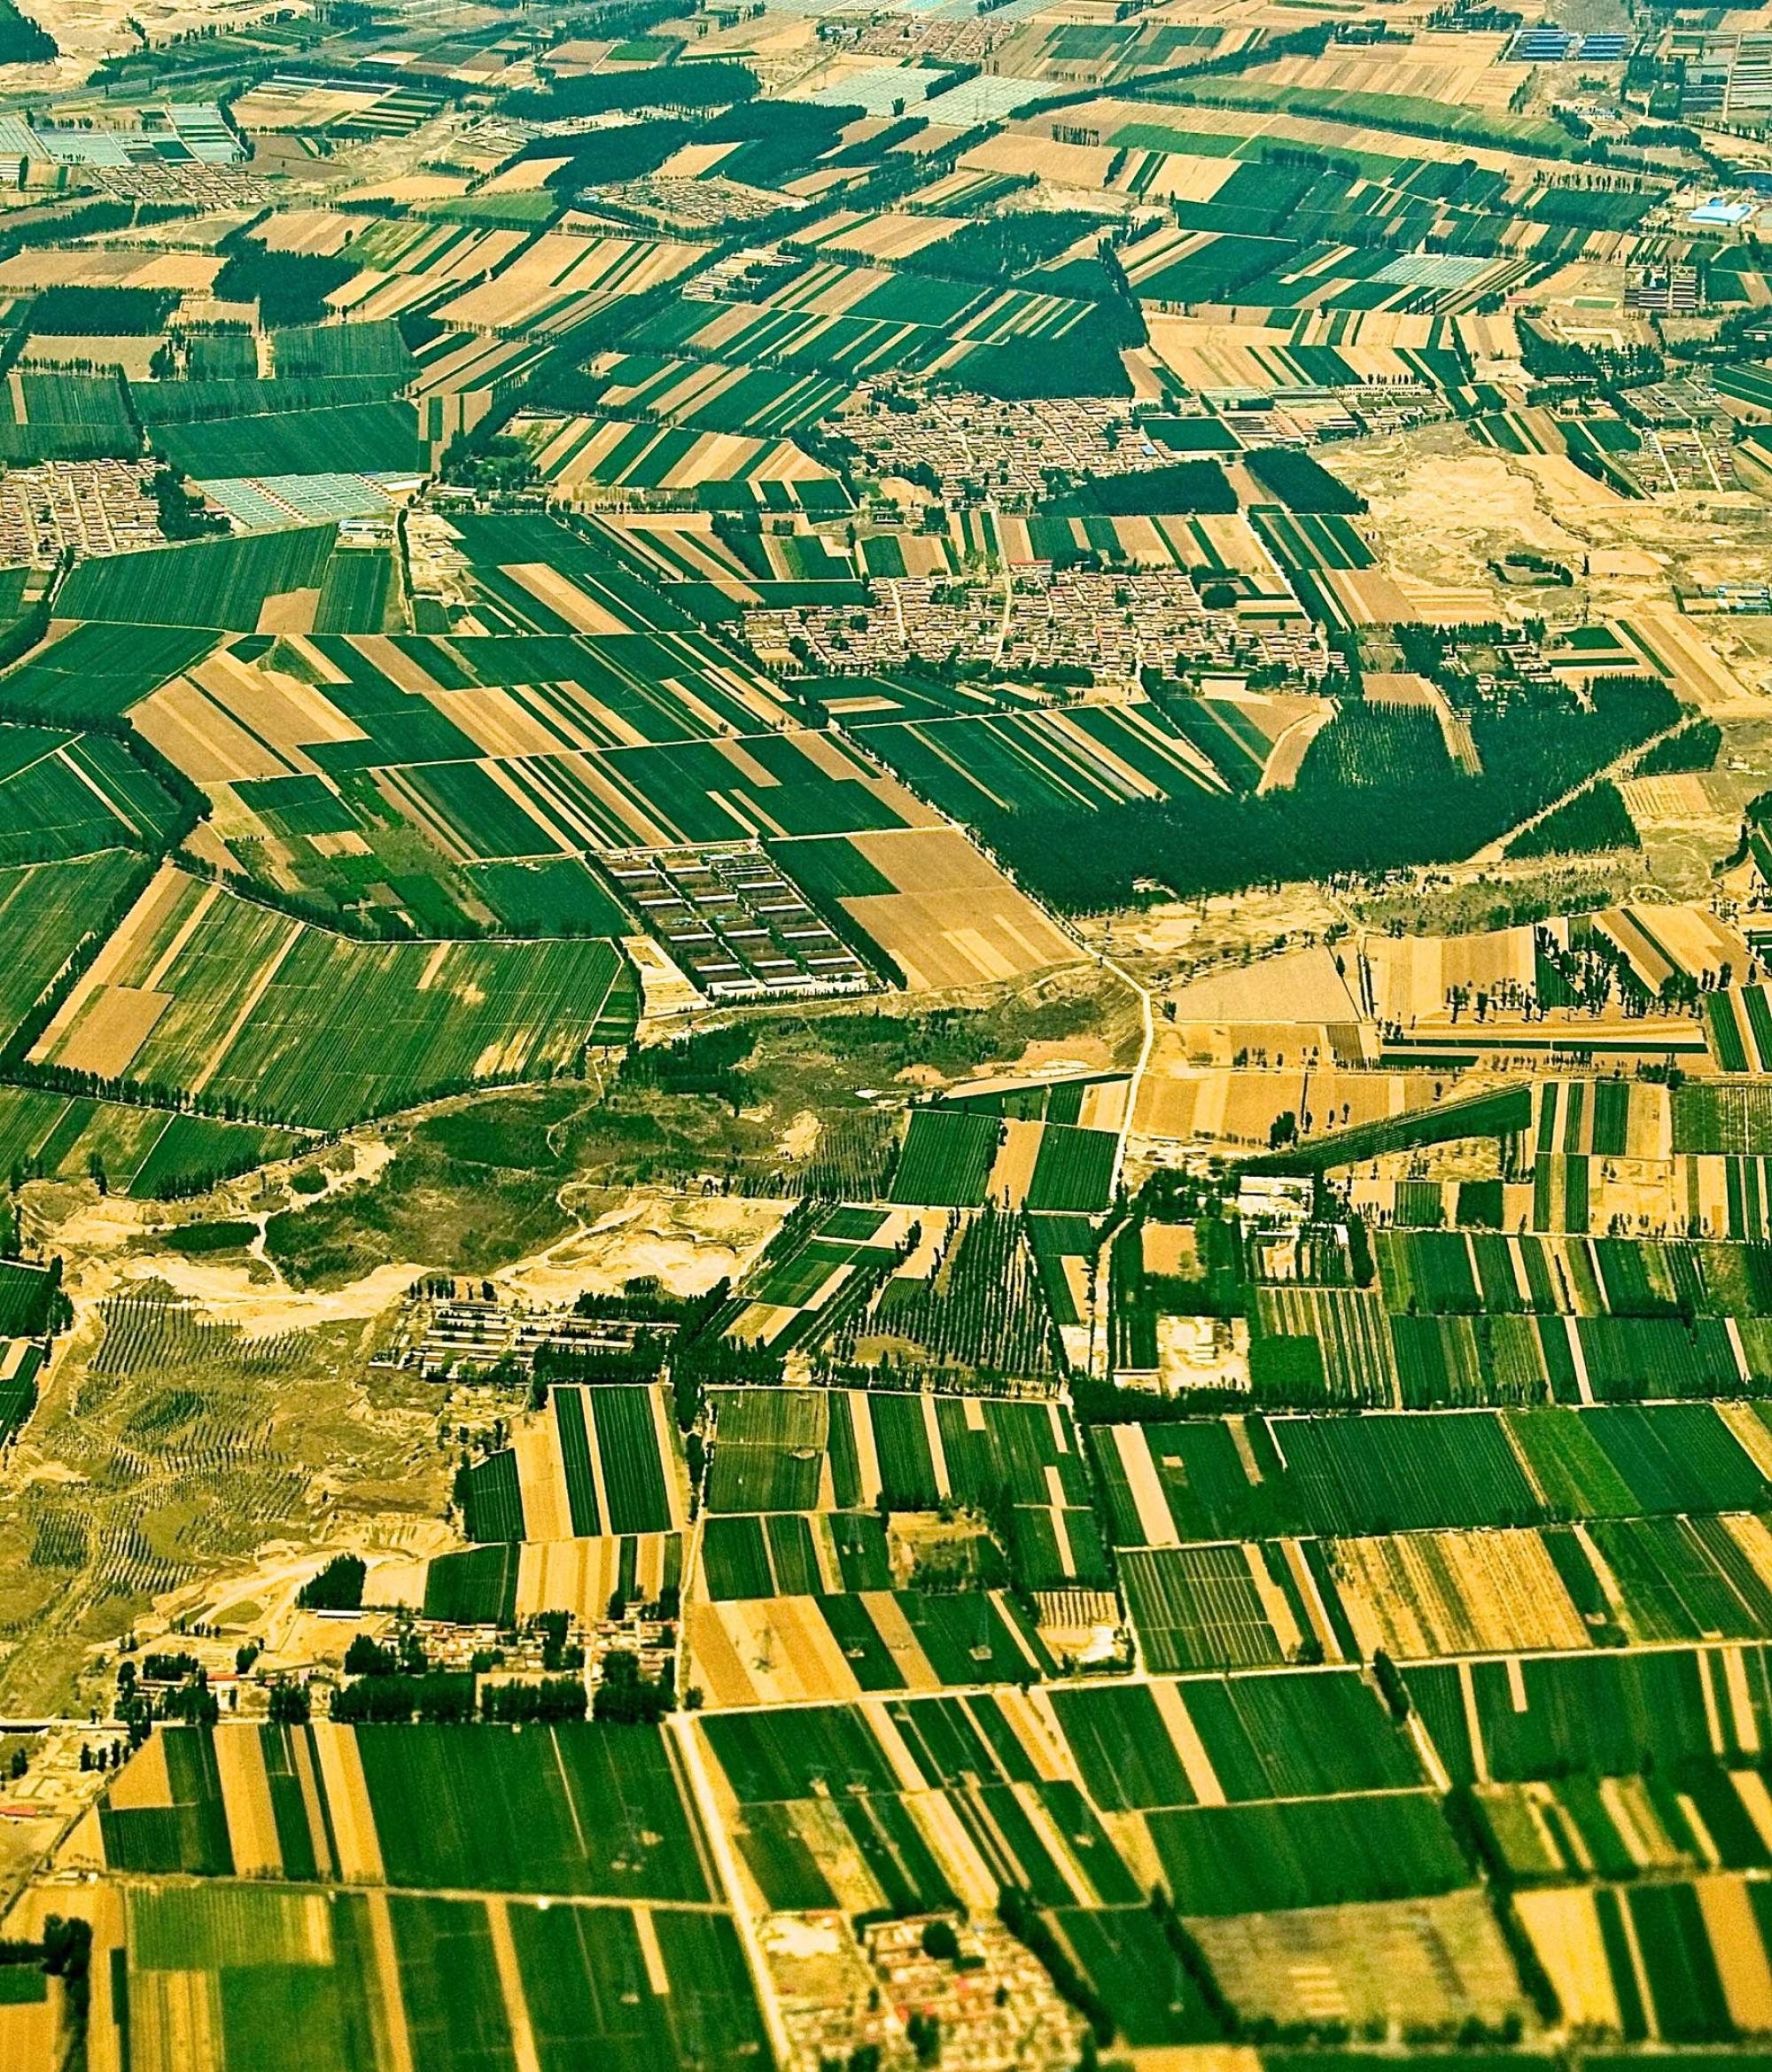 """The 30 million hectares of small farms in northern China include a patchwork of fields planted with cotton genetically engineered to produce an insect-killing protein and """"refuges"""" of other crops that do not make such proteins."""